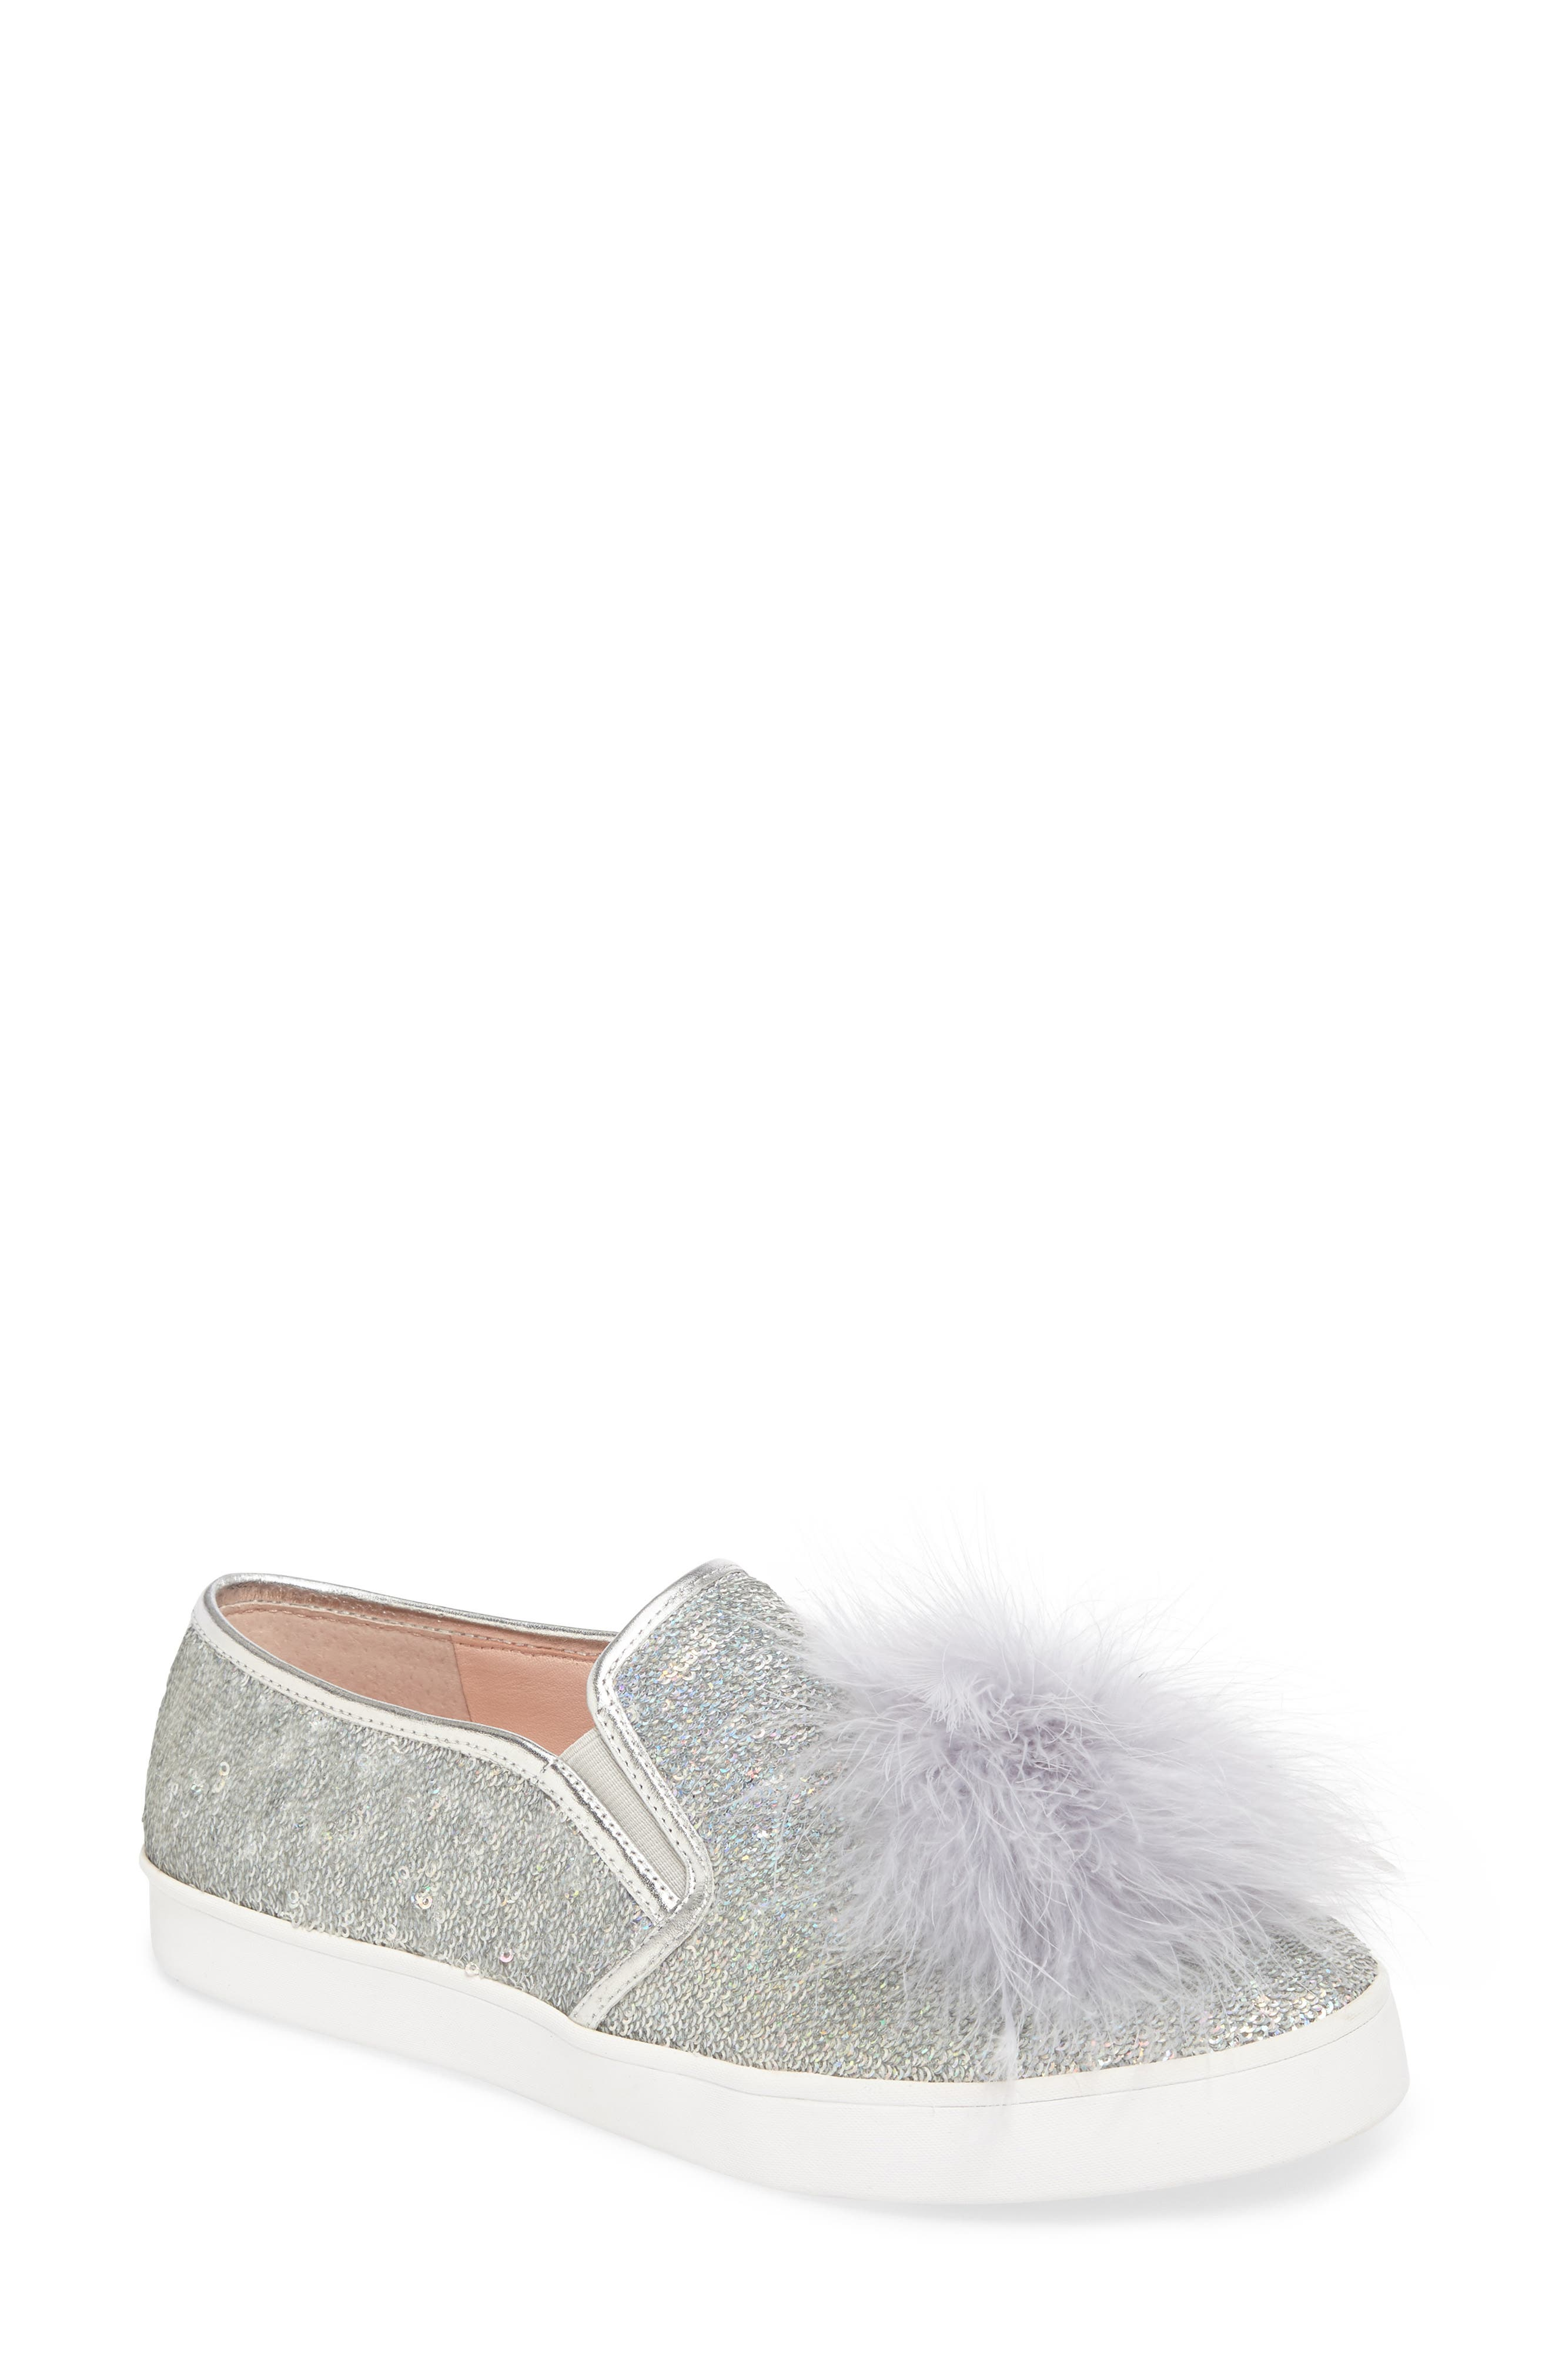 sequin slip-on sneaker,                         Main,                         color, Silver Sequins